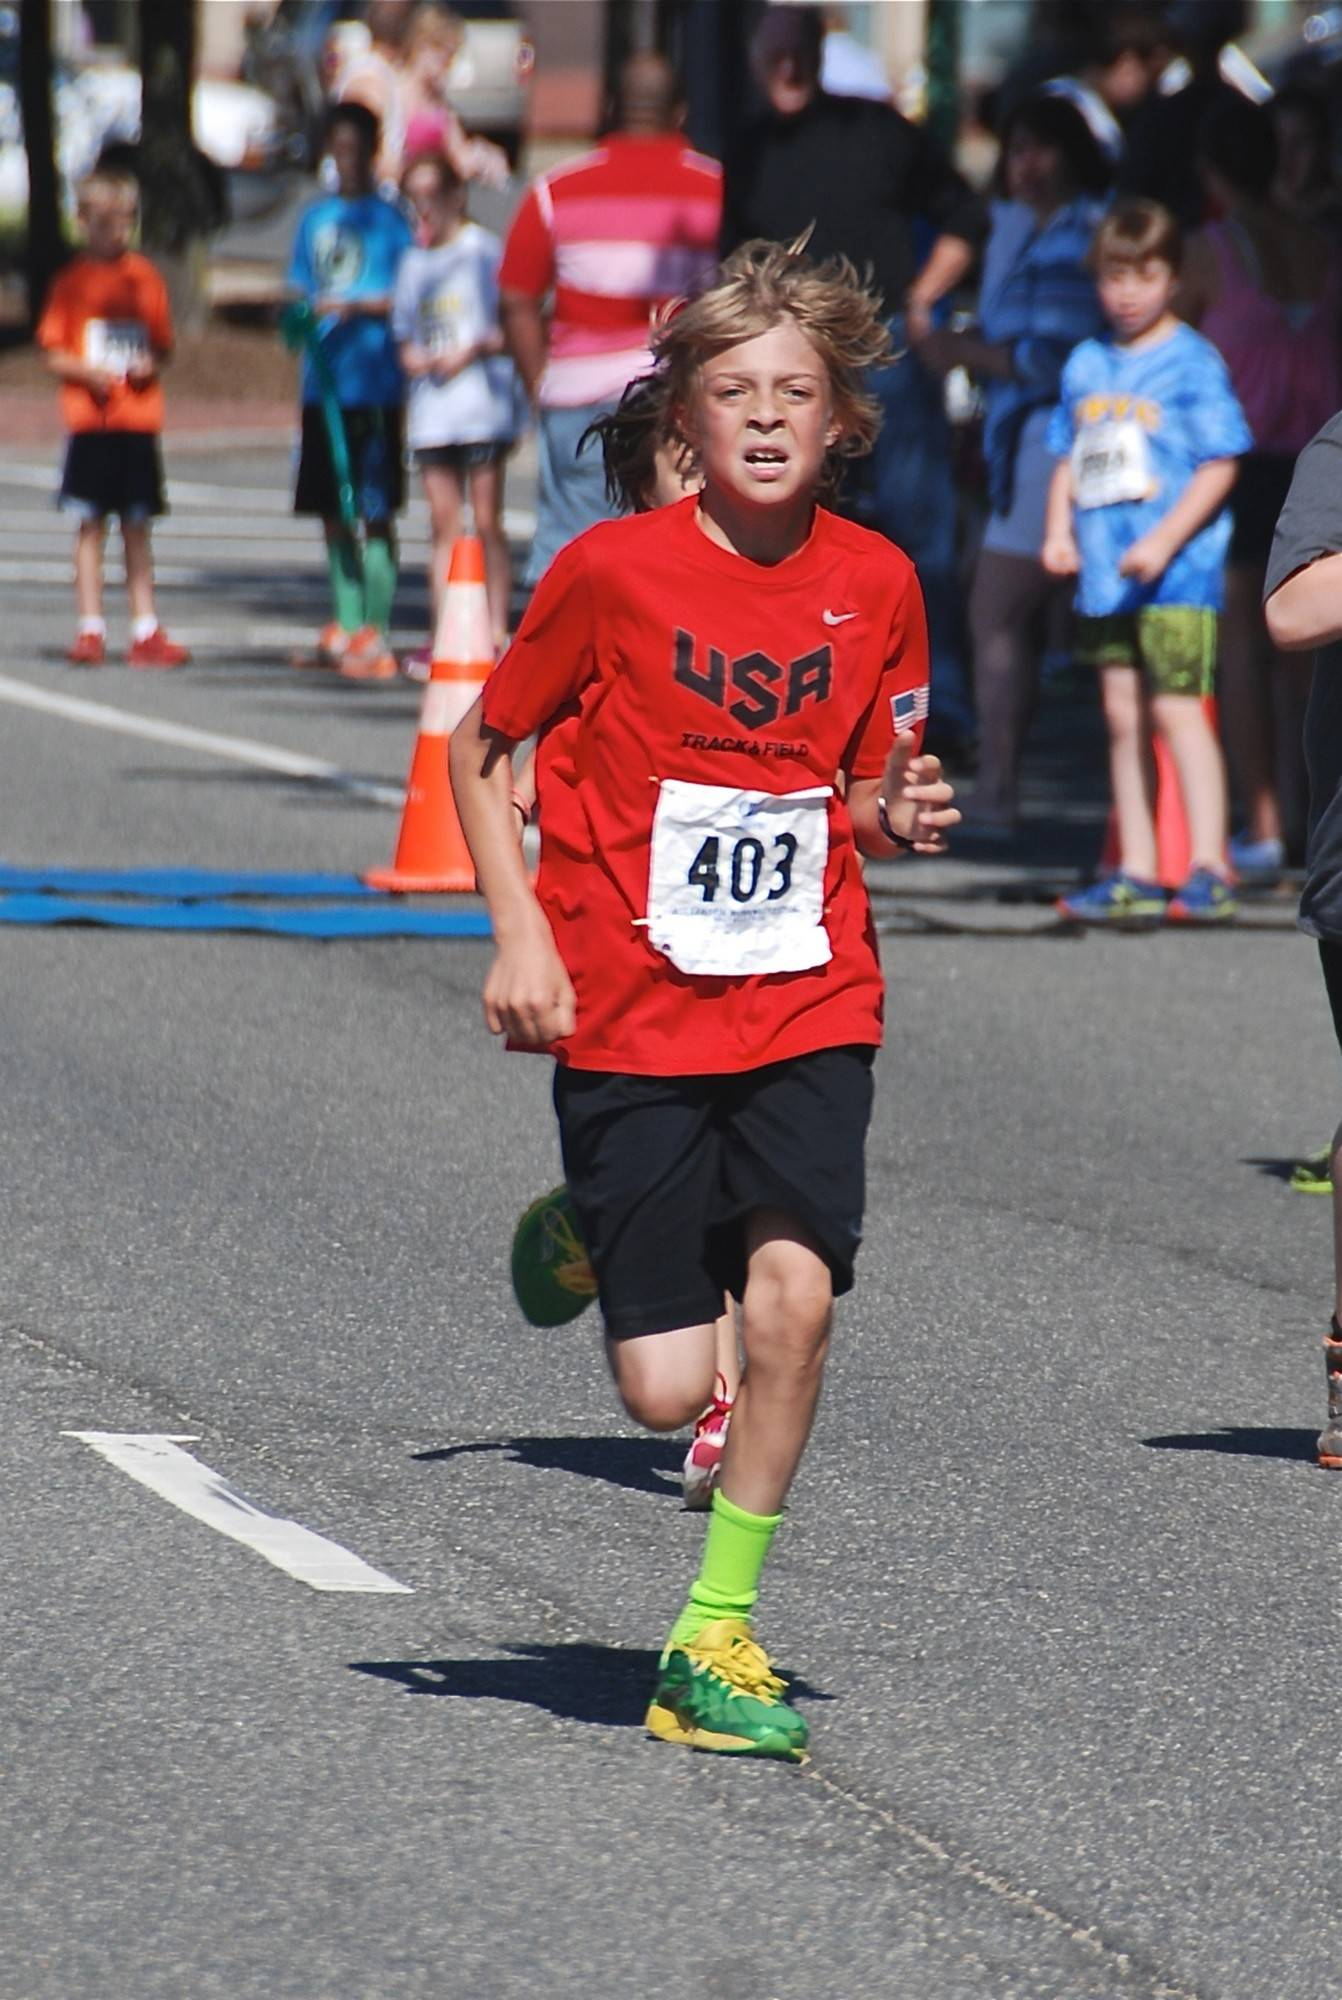 Rheinhardt Harrison, 10, of Falls Church, Va., ran his first half-marathon in 1:35:02. The time, believed to be a world record for his age, is awaiting certification.